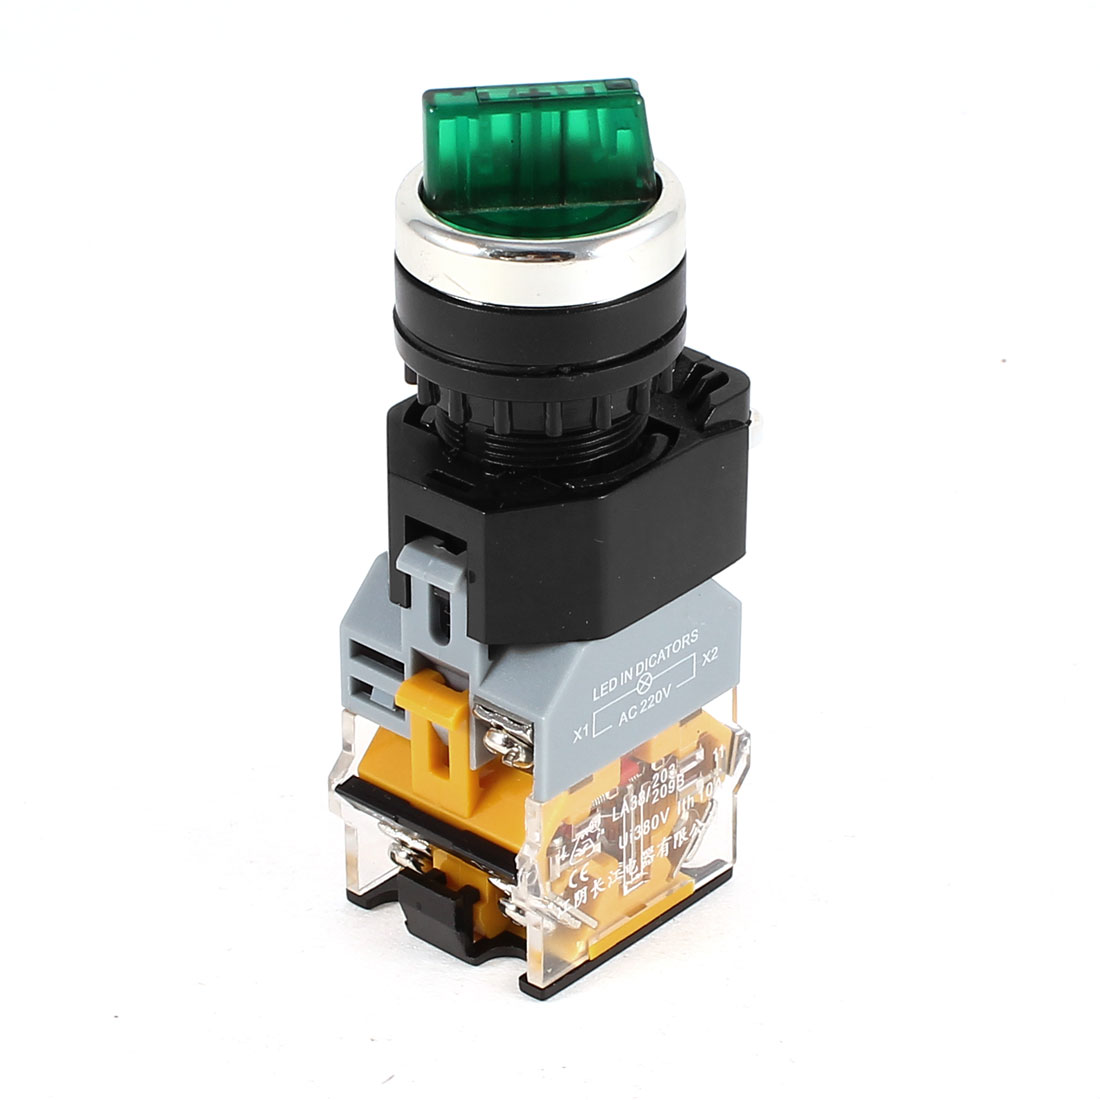 AC 220V NO NC DPST 2 Position Green Light Latching Rotary Switch